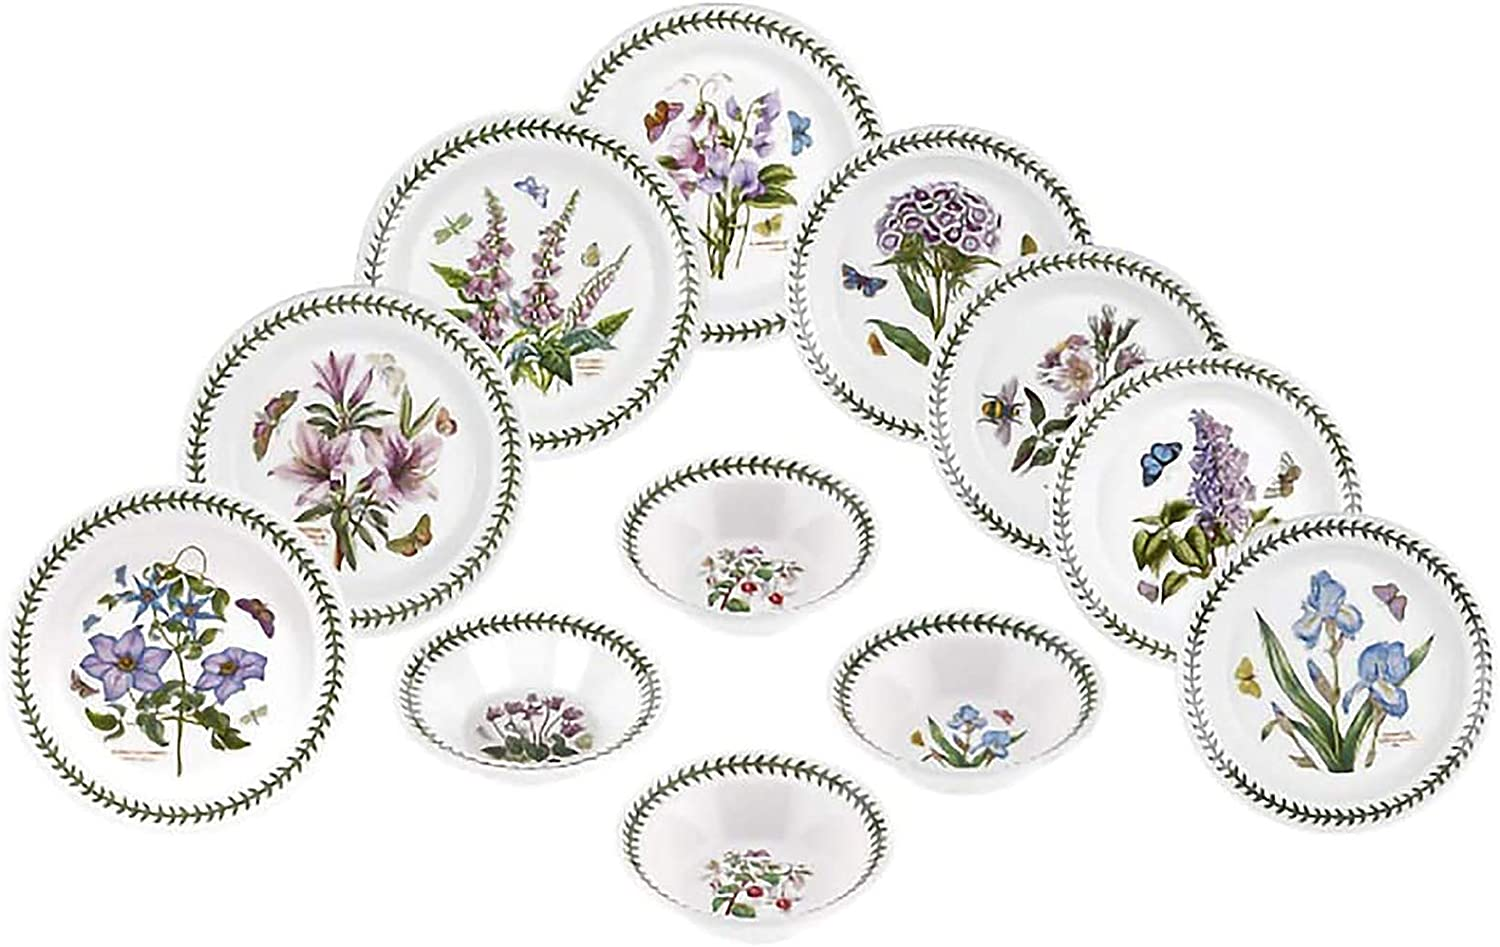 Portmeirion Dinnerware - Botanic Garden 12 Piece Earthenware Dish Set - Includes 4 10.5